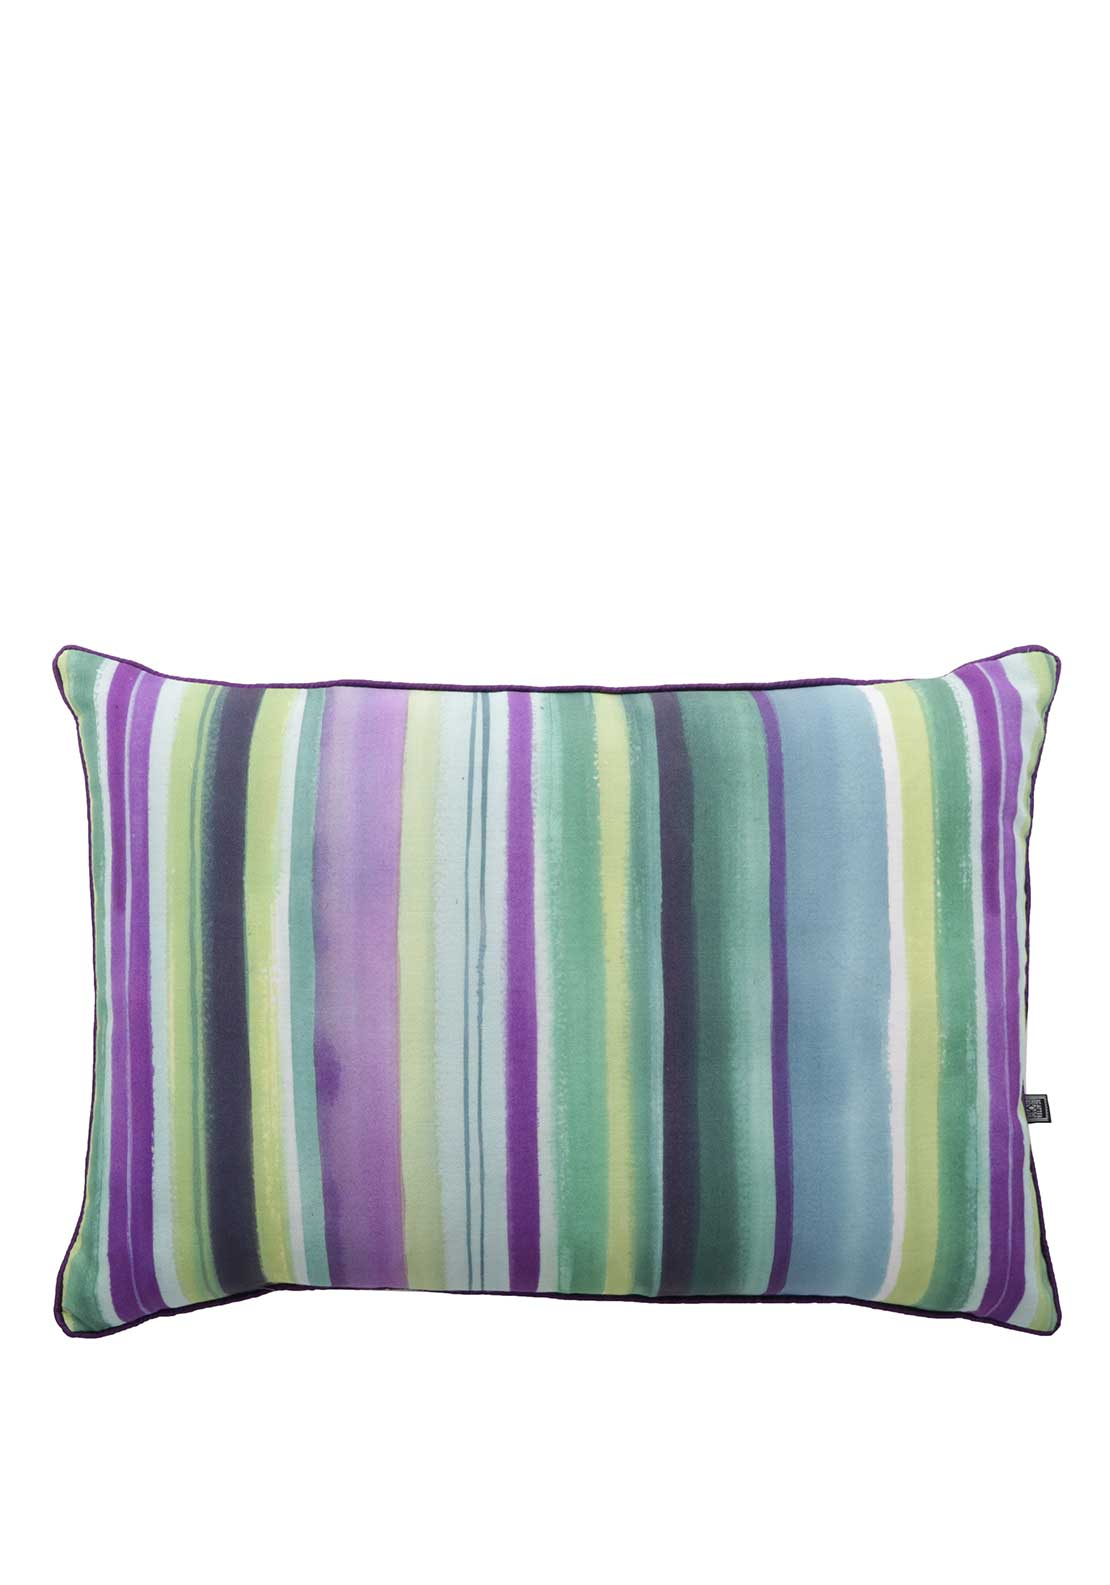 Scatterbox Audrey Striped Cushion Multi-Coloured 35 x 50cm